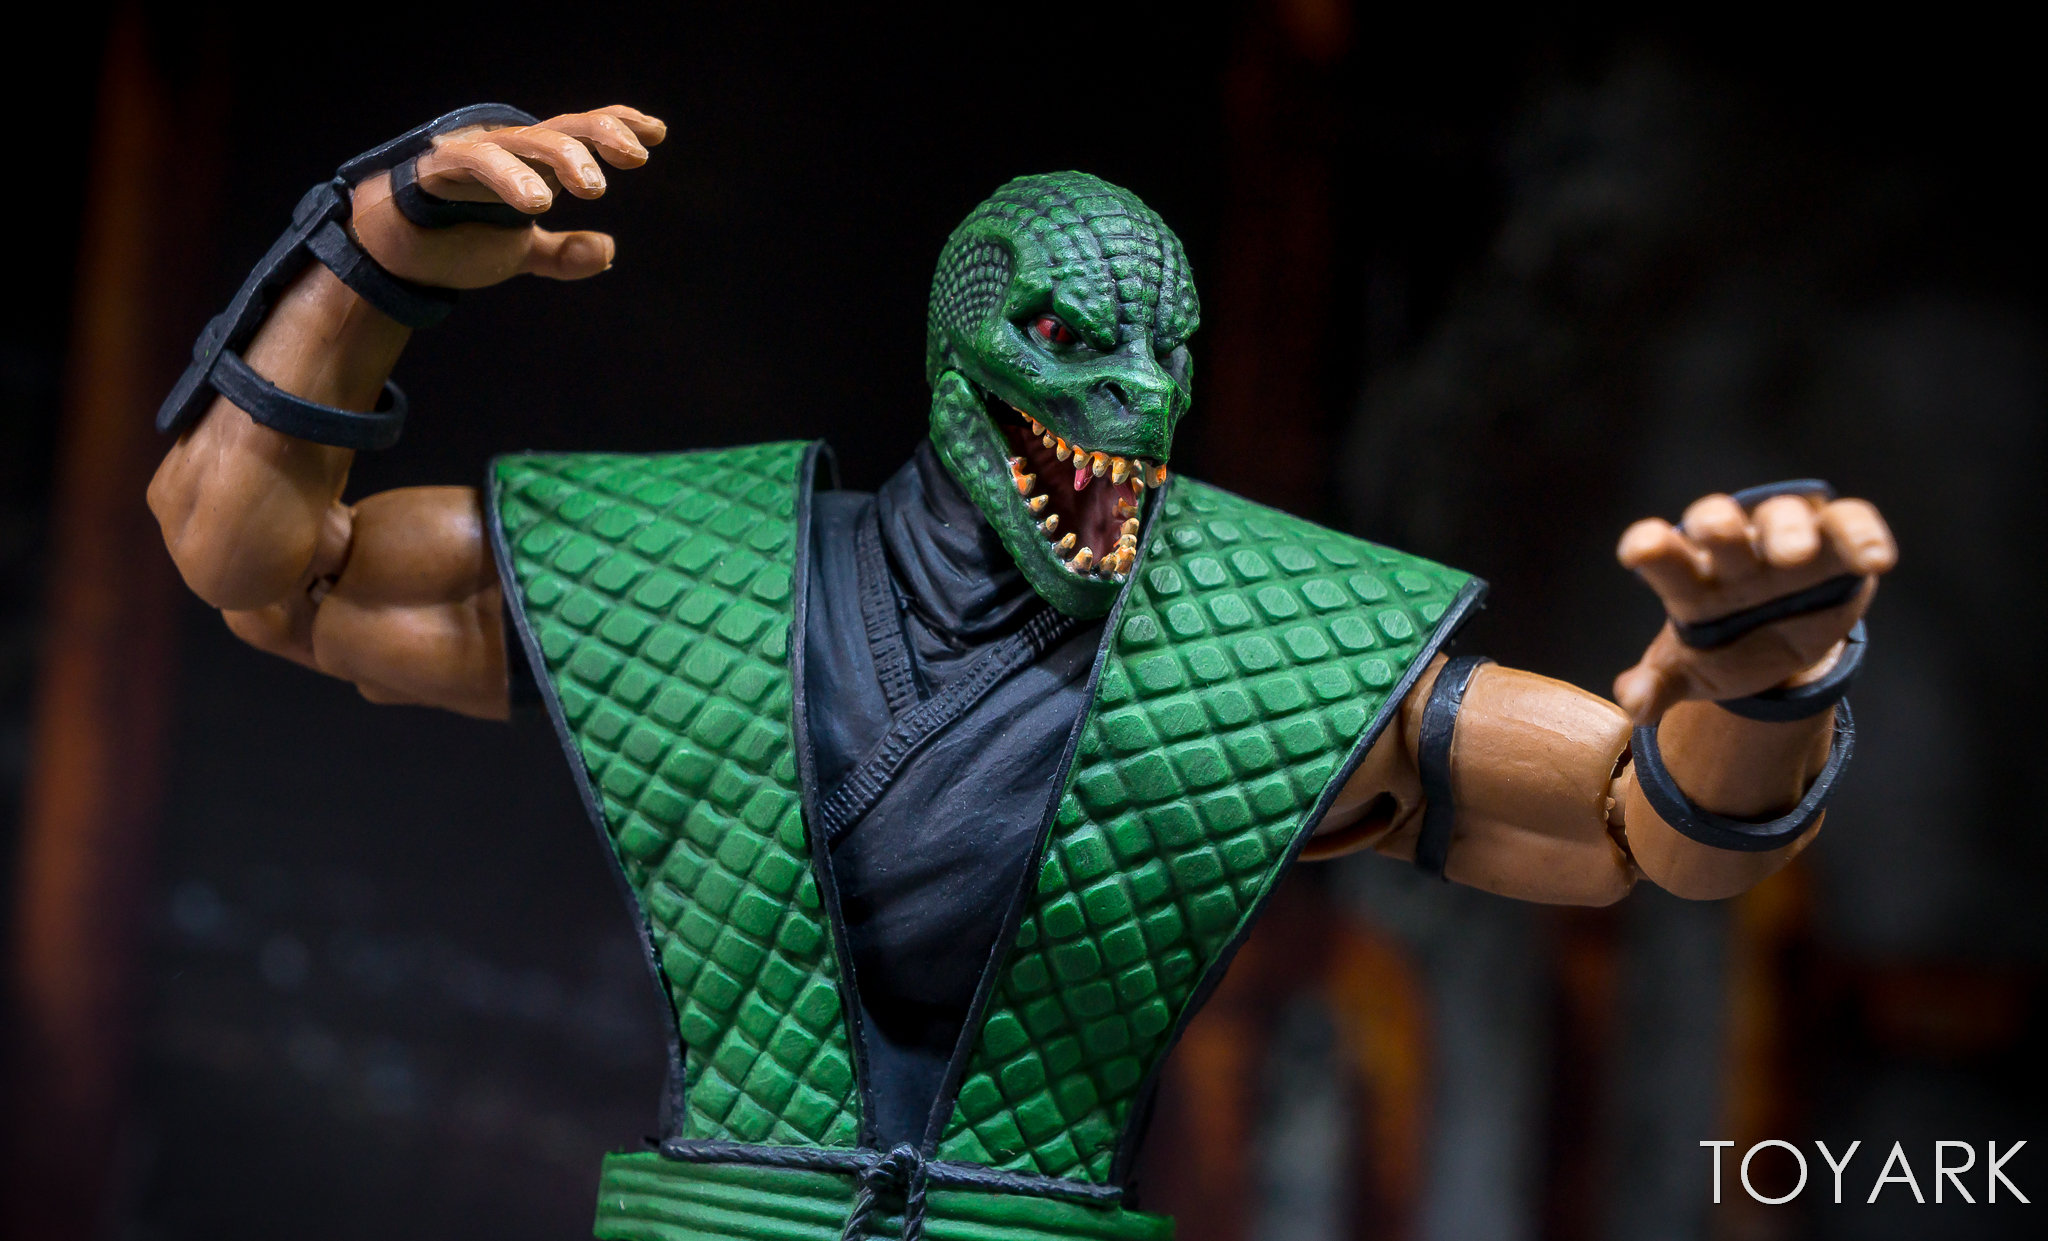 http://news.toyark.com/wp-content/uploads/sites/4/2018/02/Storm-Mortal-Kombat-Reptile-030.jpg